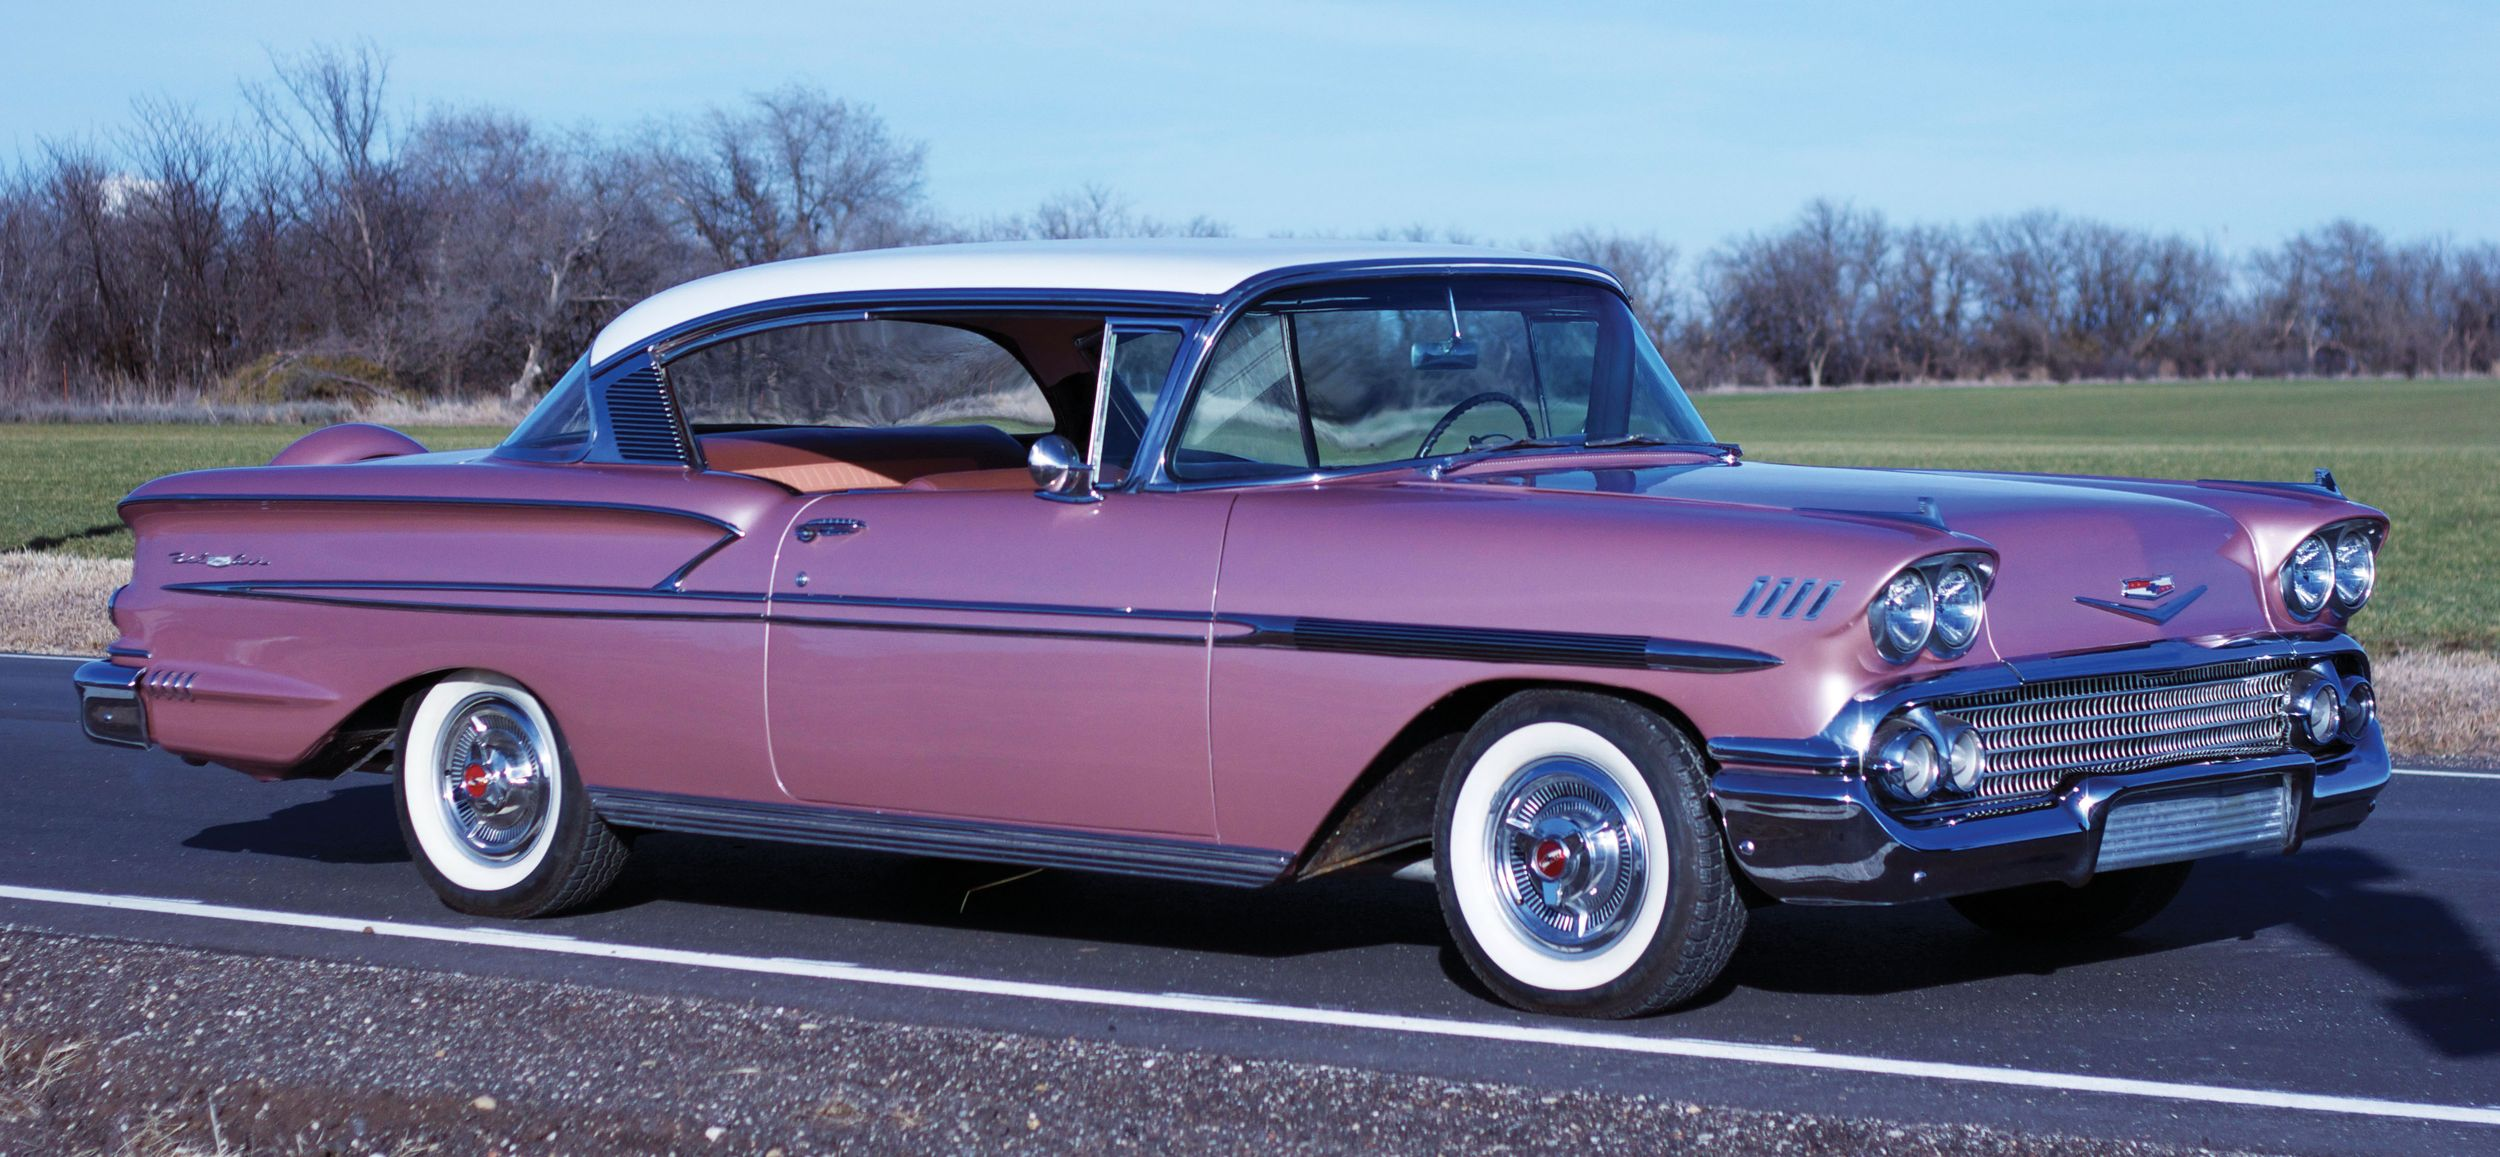 1958 Chevrolet Bel Air #25